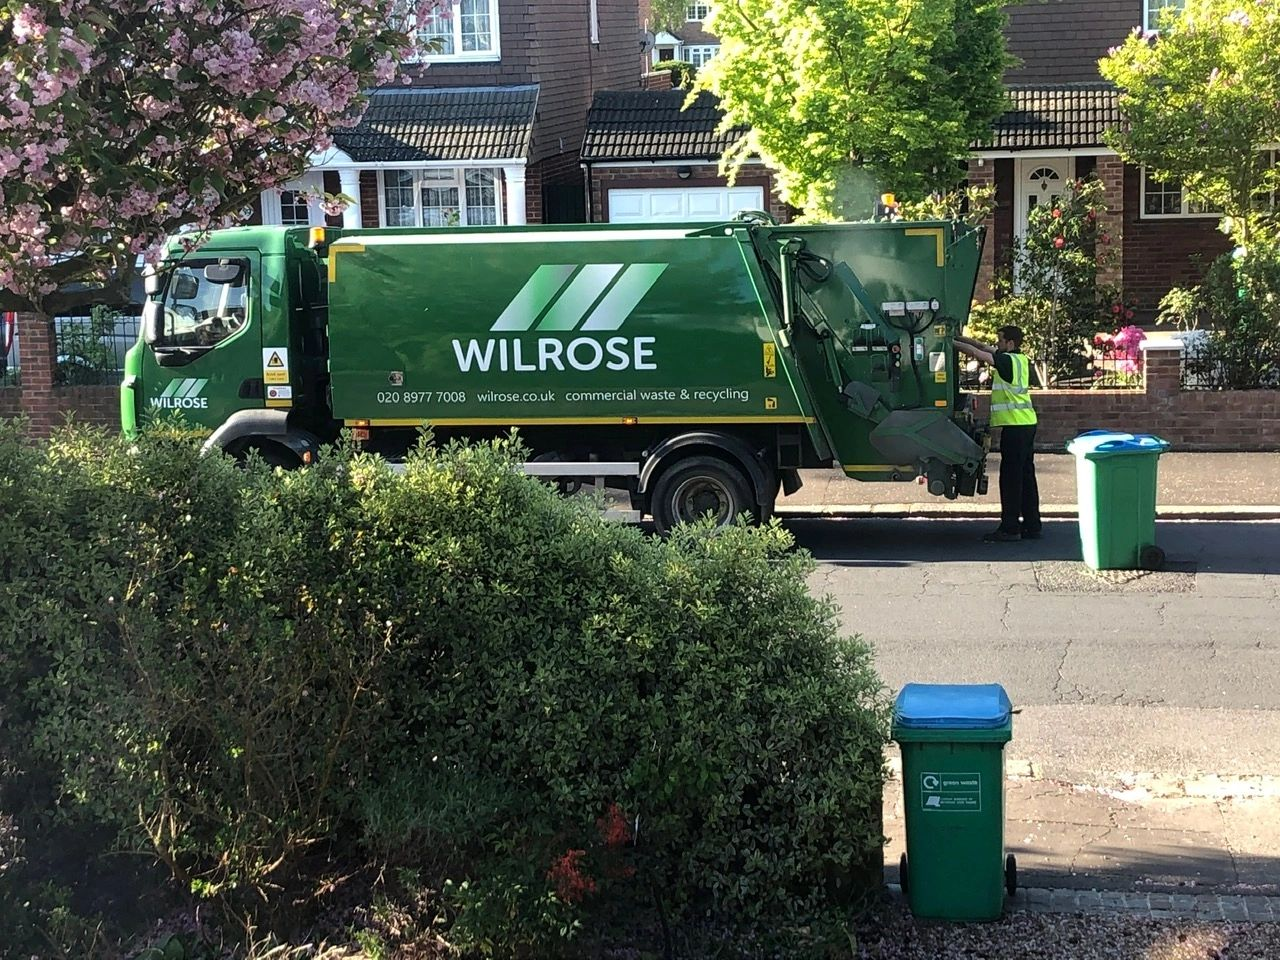 Green Waste dustcart emptying green waste bins in Richmond, Surrey and Middlesex.